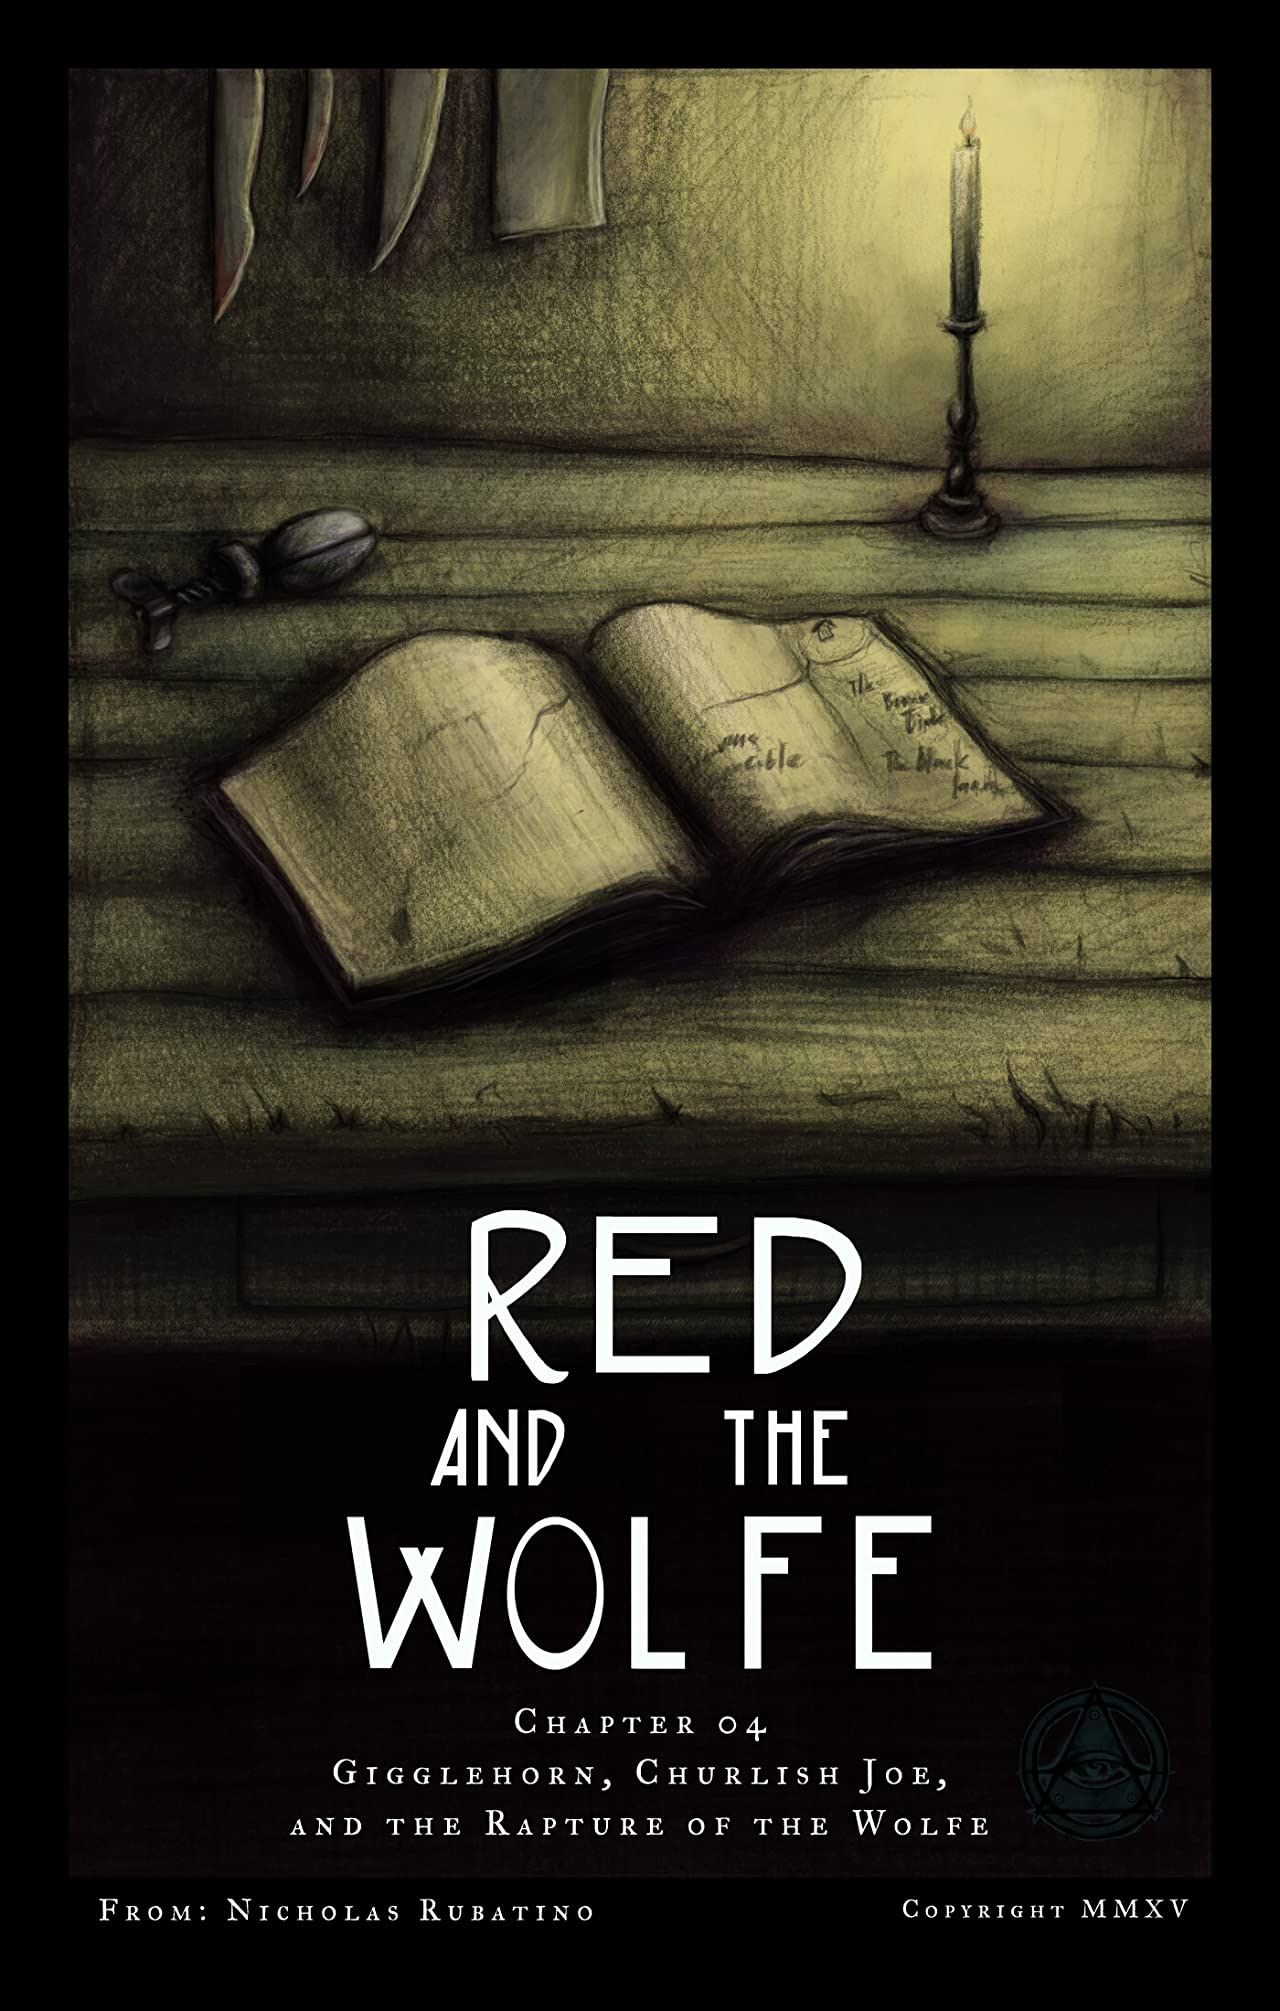 Red and the Wolfe #4: Gigglehorn, Churlish Joe, and the Rapture of the Wolfe